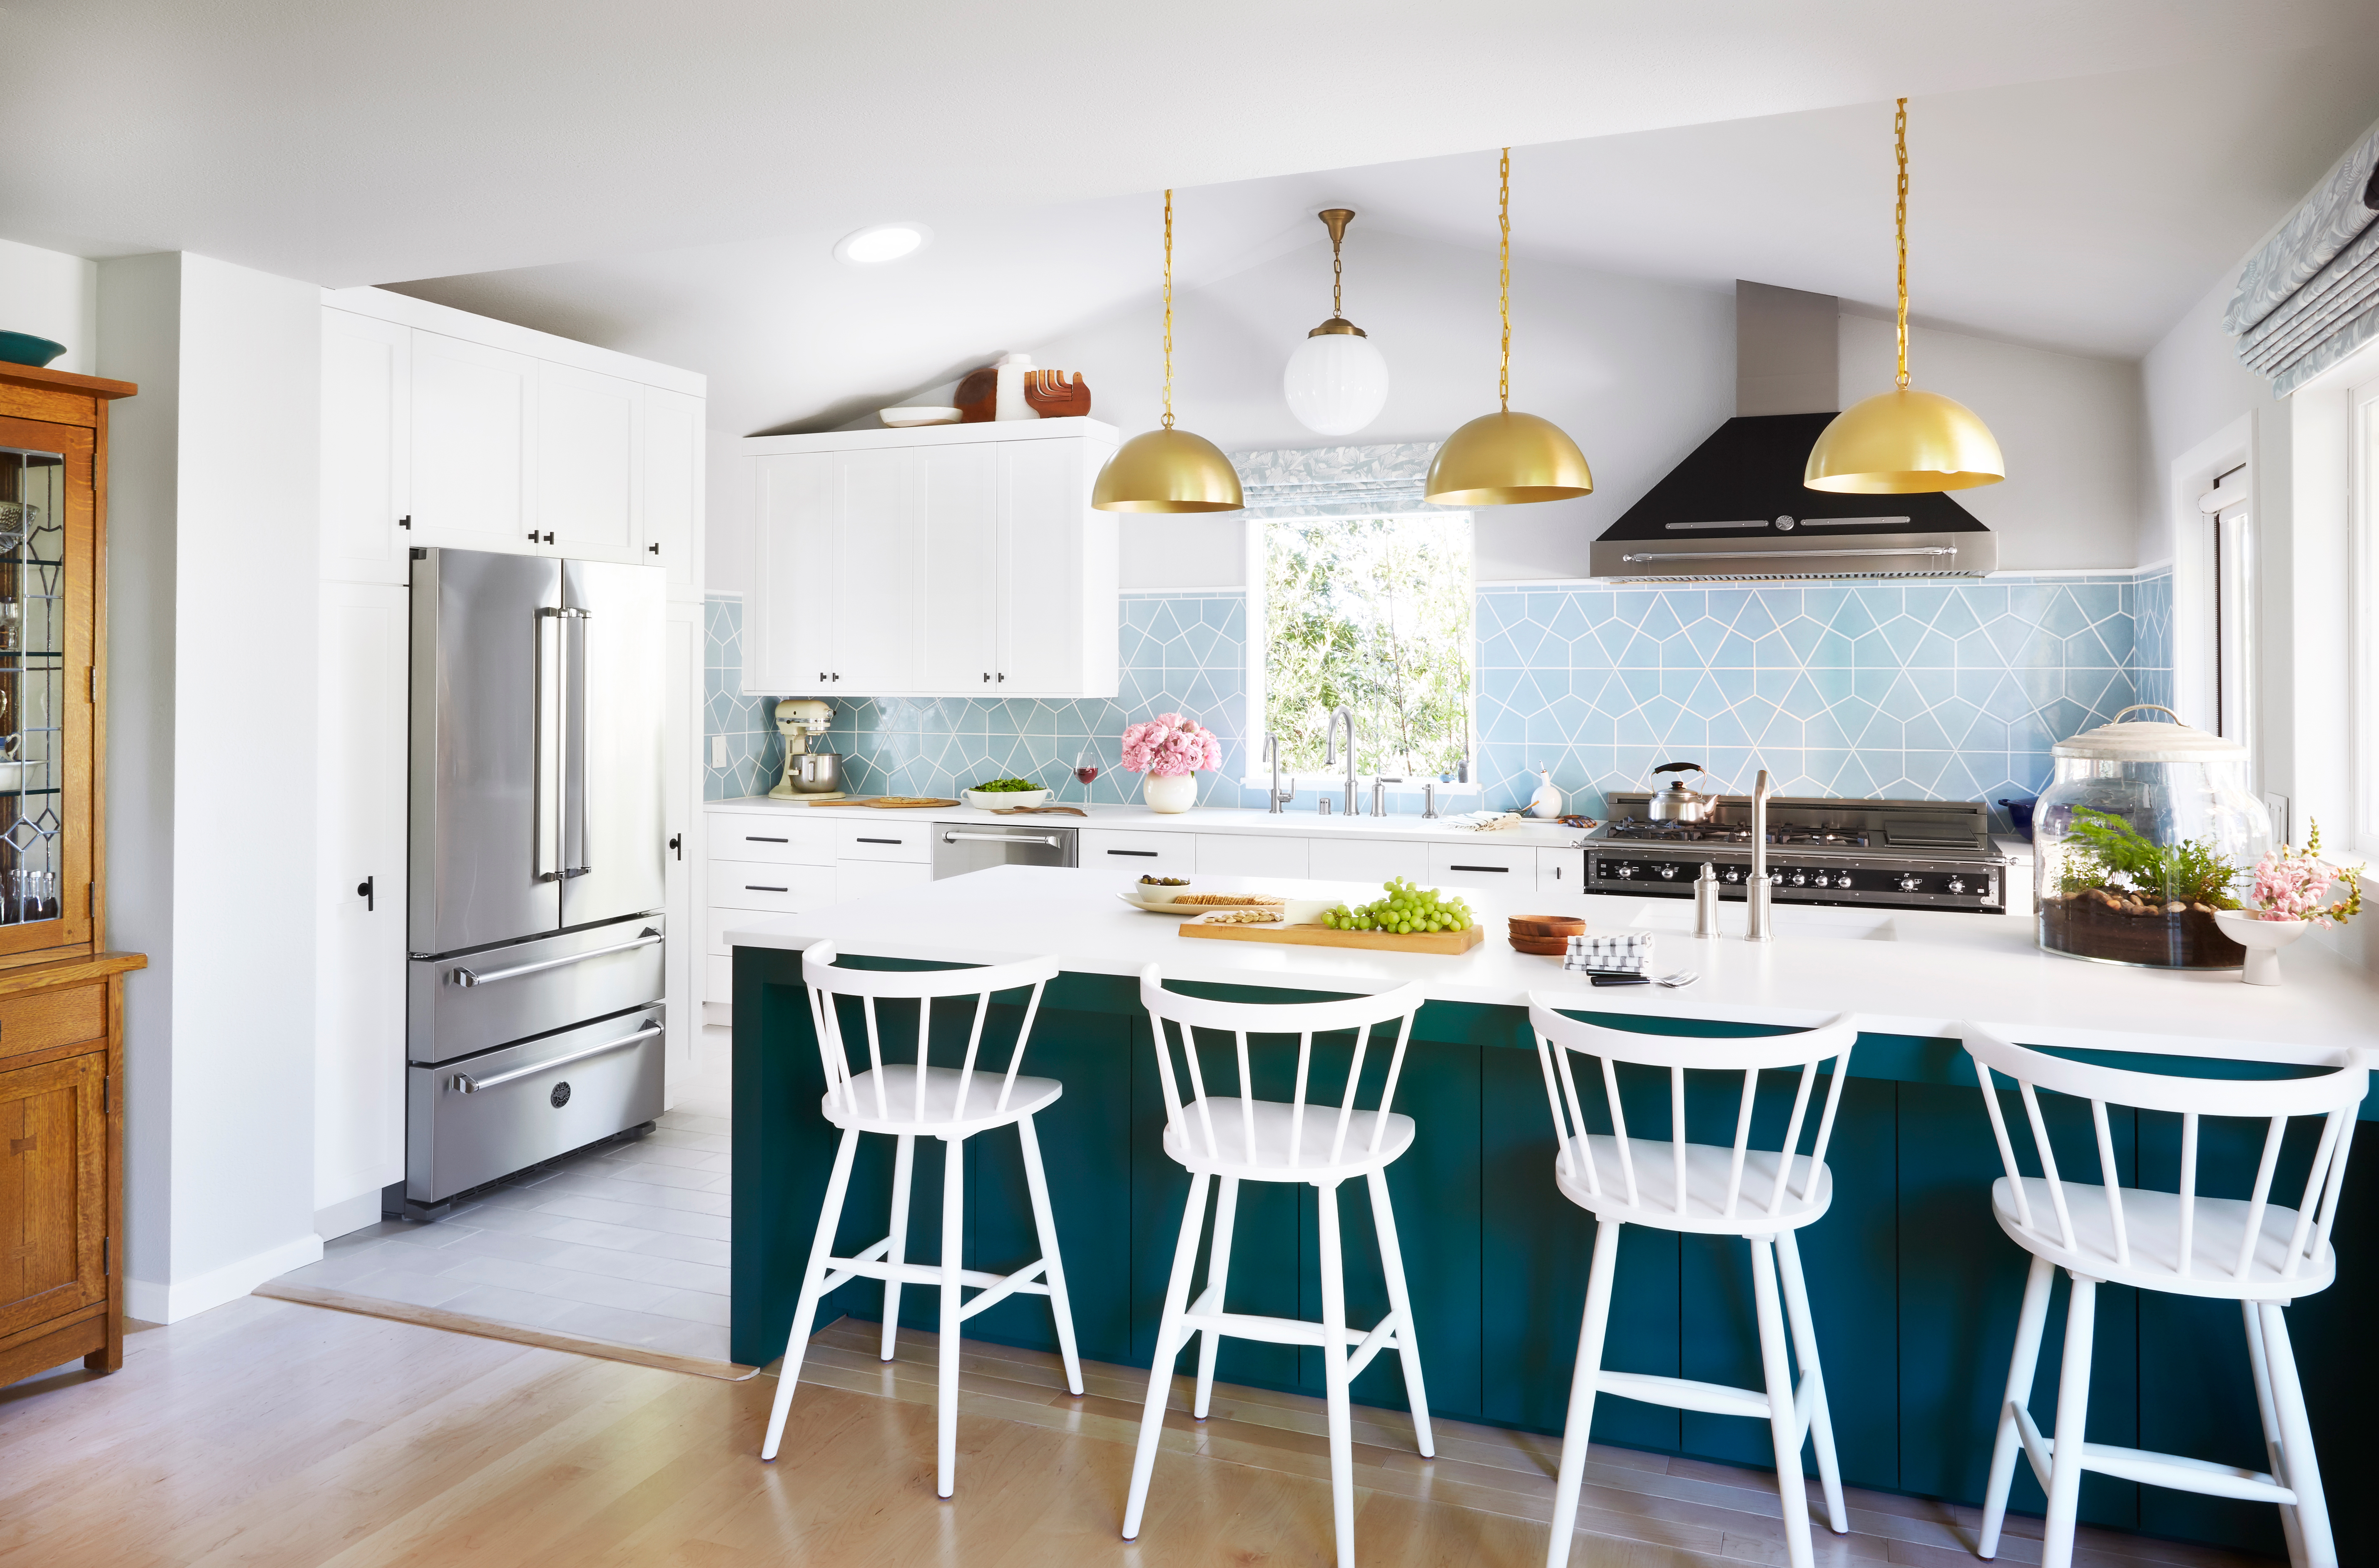 Orlando Soria's parent's kitchen reveal, featuring our Hexite in Crater Lake